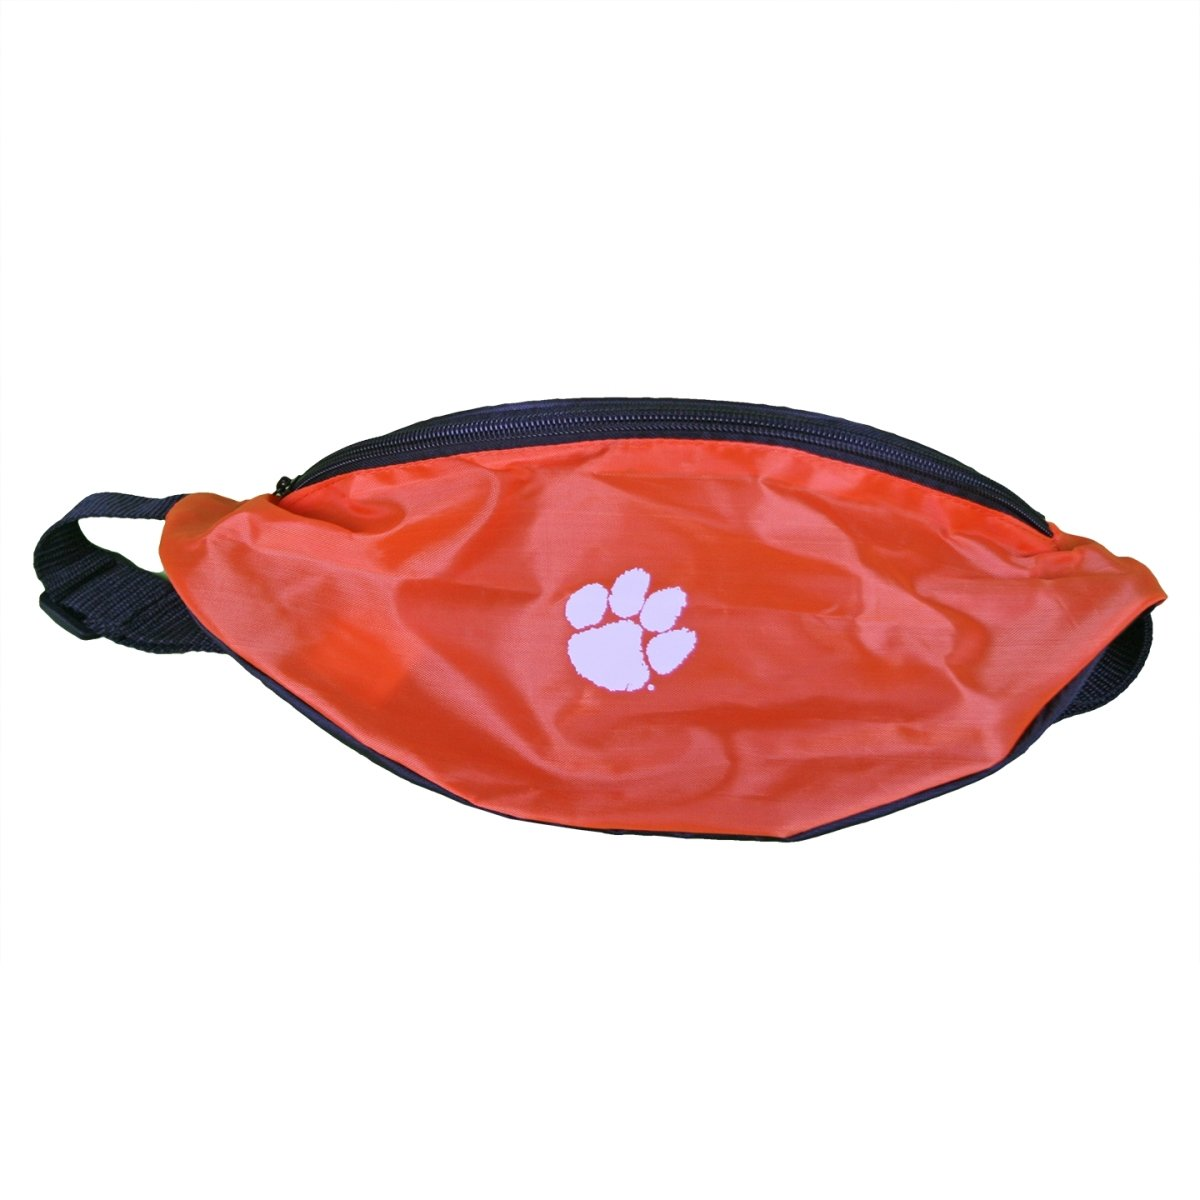 Fanny Pack With White Paw - Mr. Knickerbocker